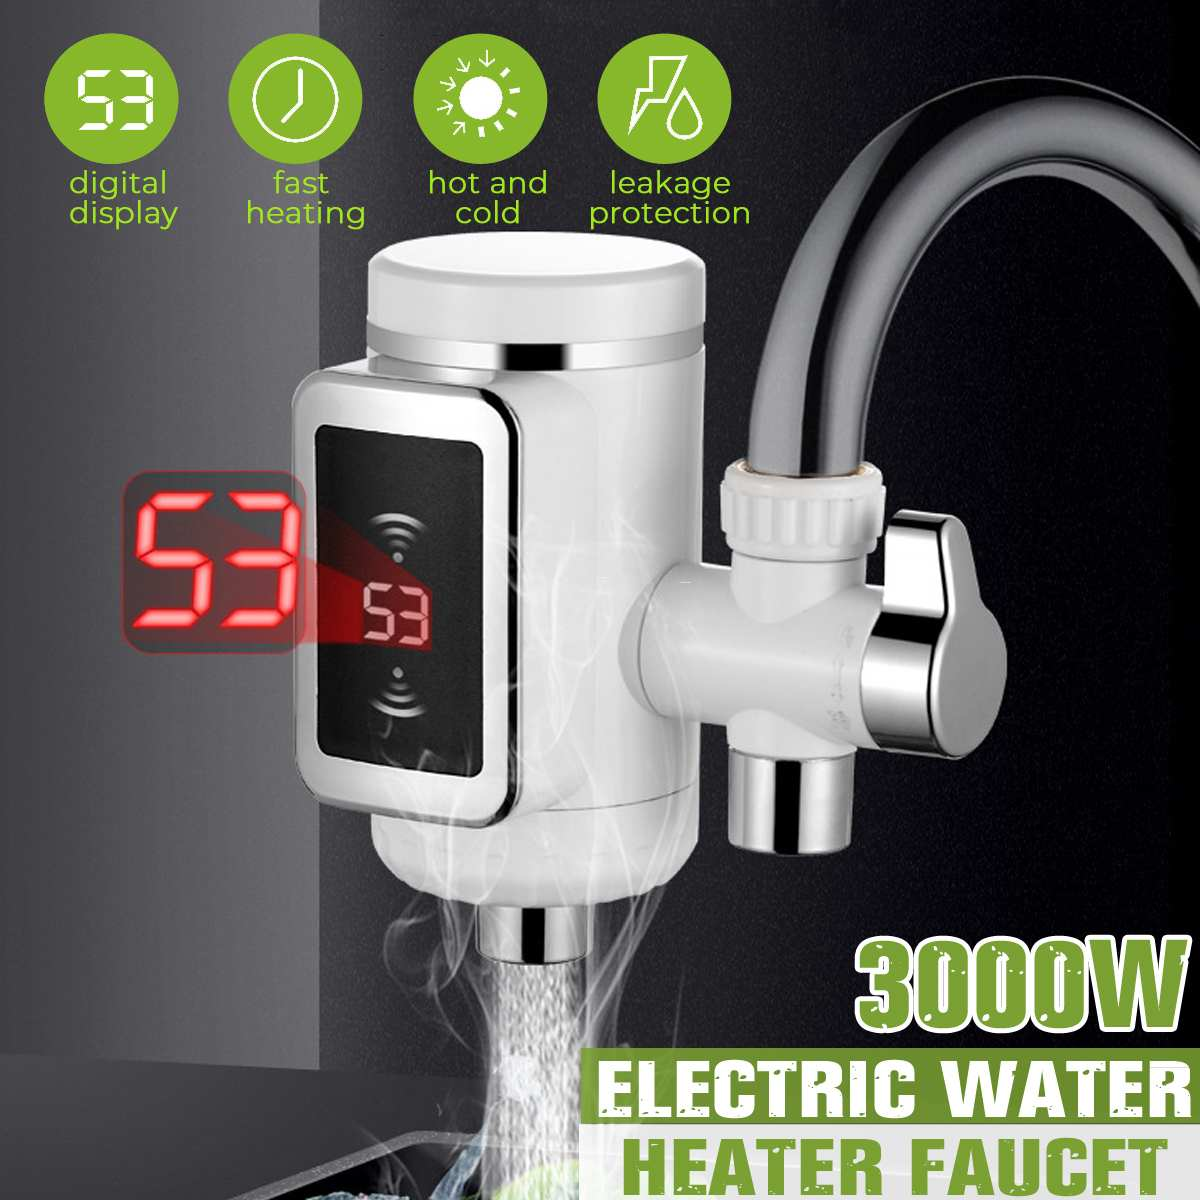 3000W Electric Kitchen Water Heating Tap Instant Hot Water Faucet Heating Tankless Water Heater LED Display EU Pulg 220V